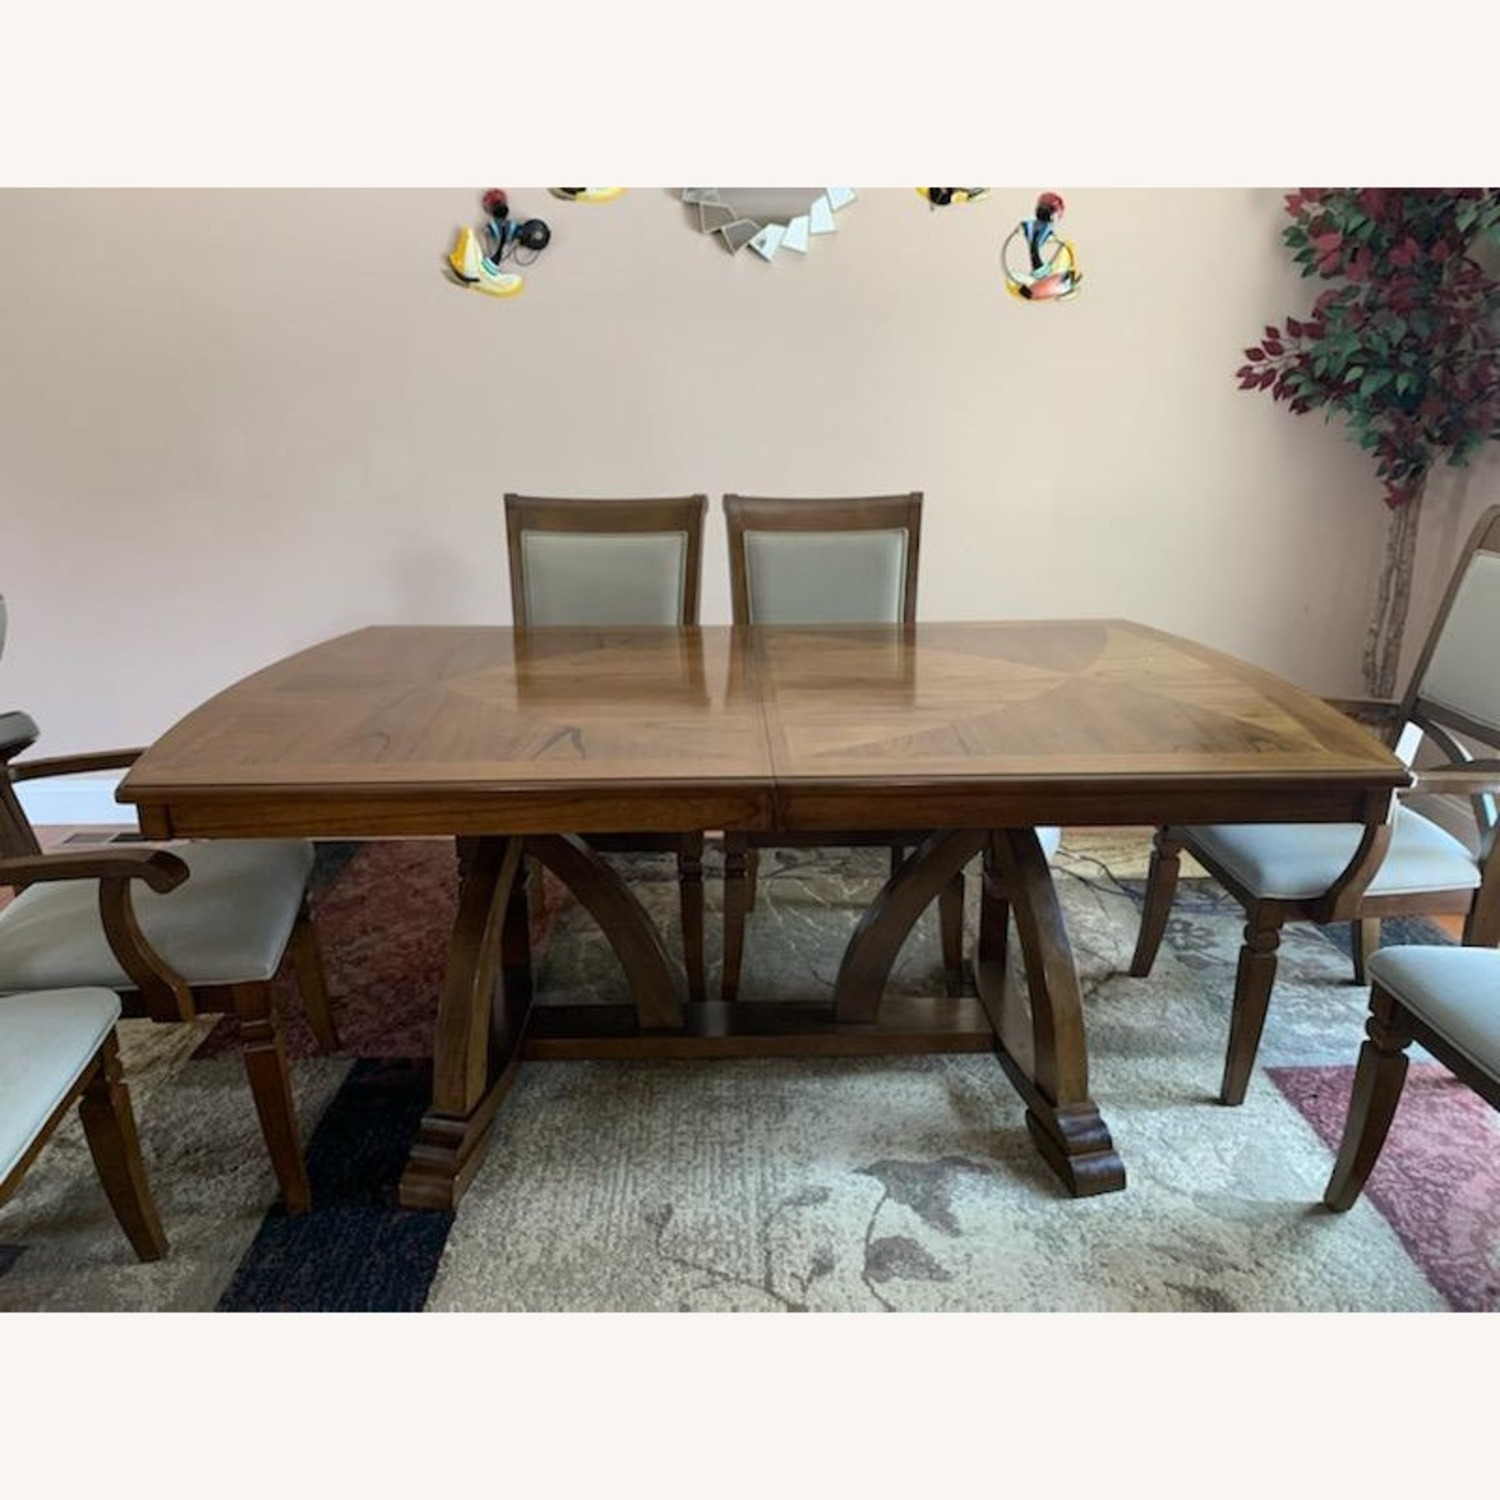 Raymour & Flanigan Dining Table set with 6 chairs - image-6